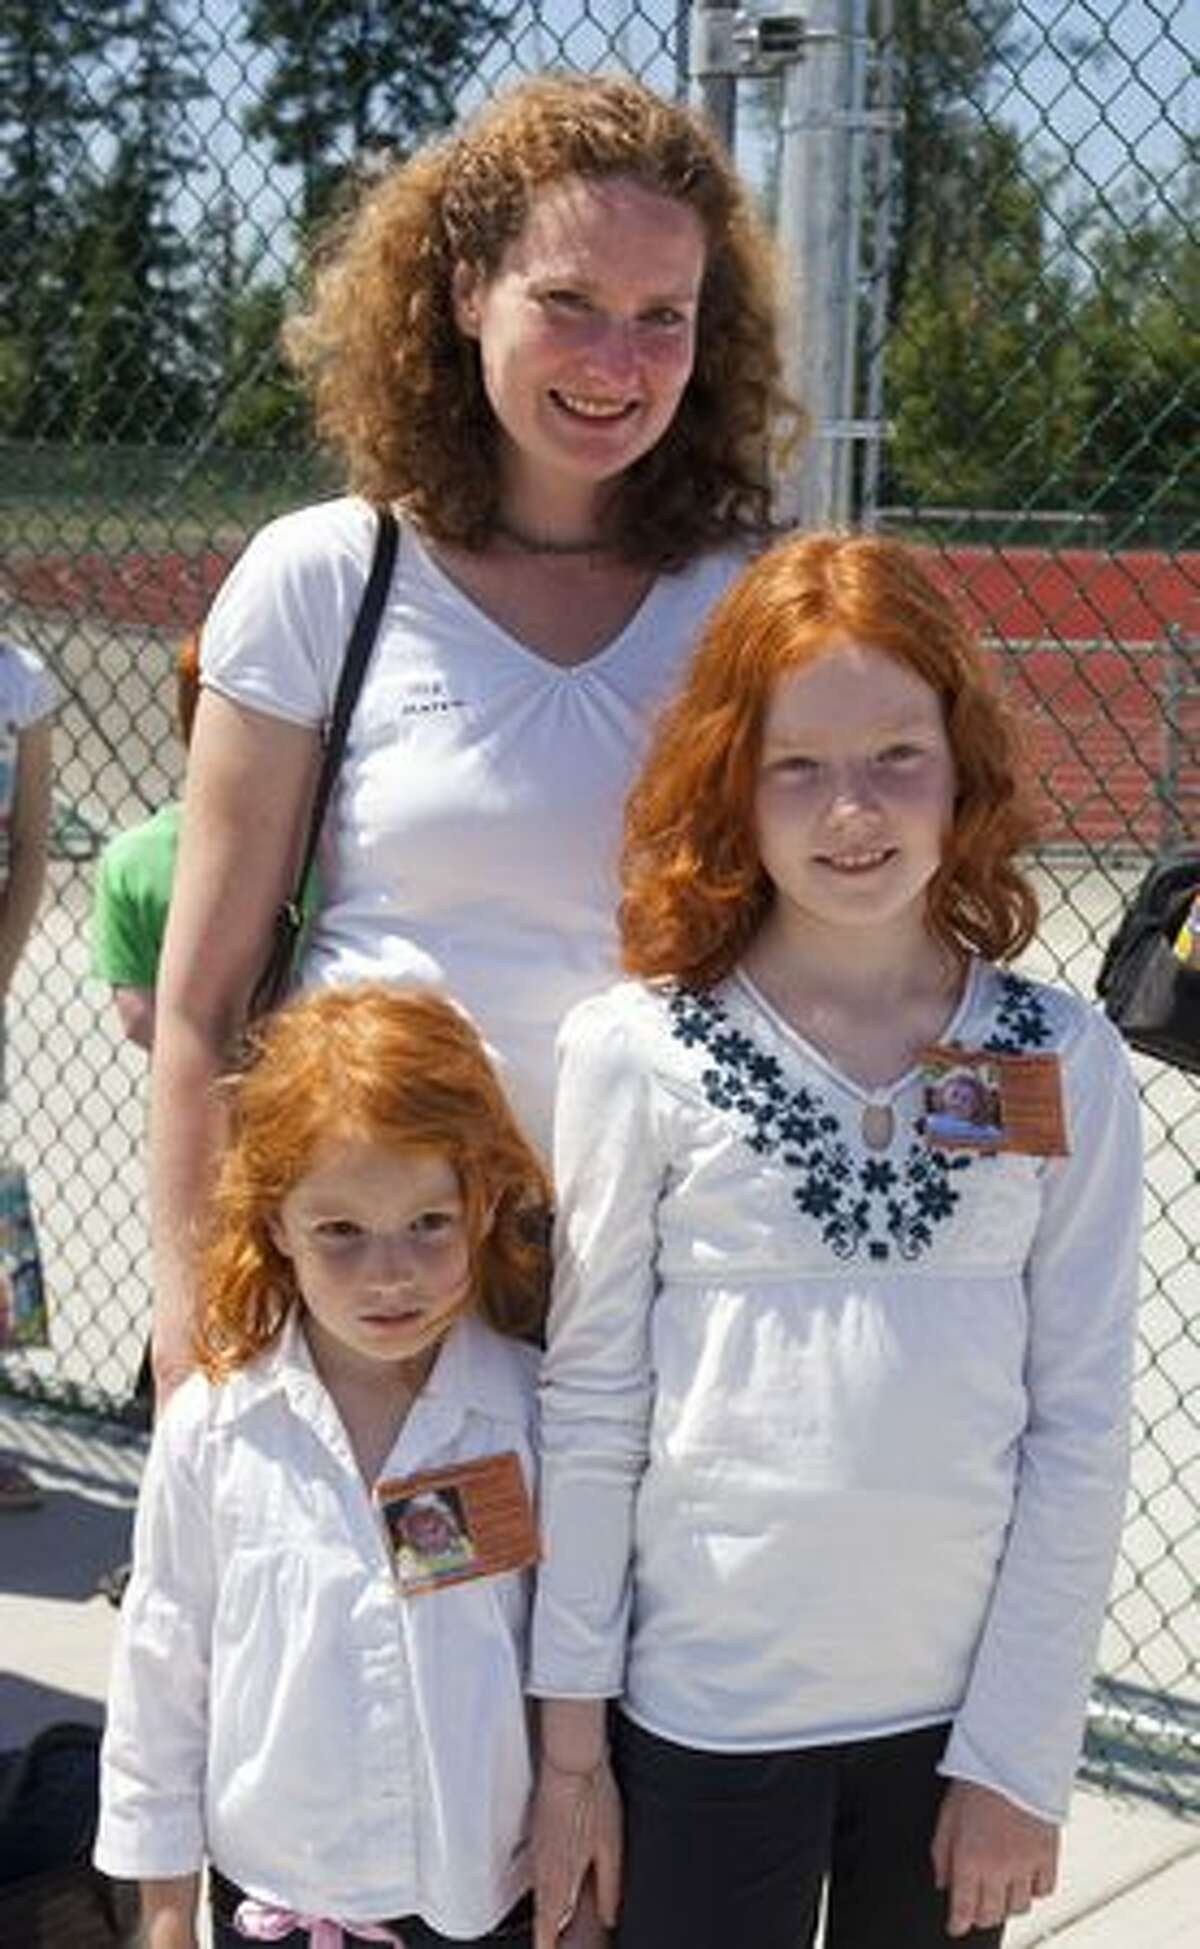 Lisann, 4, Laura, 9 and Maren Draeger were visiting from Germany and decided to participate in Redheads and More Redheads Day.